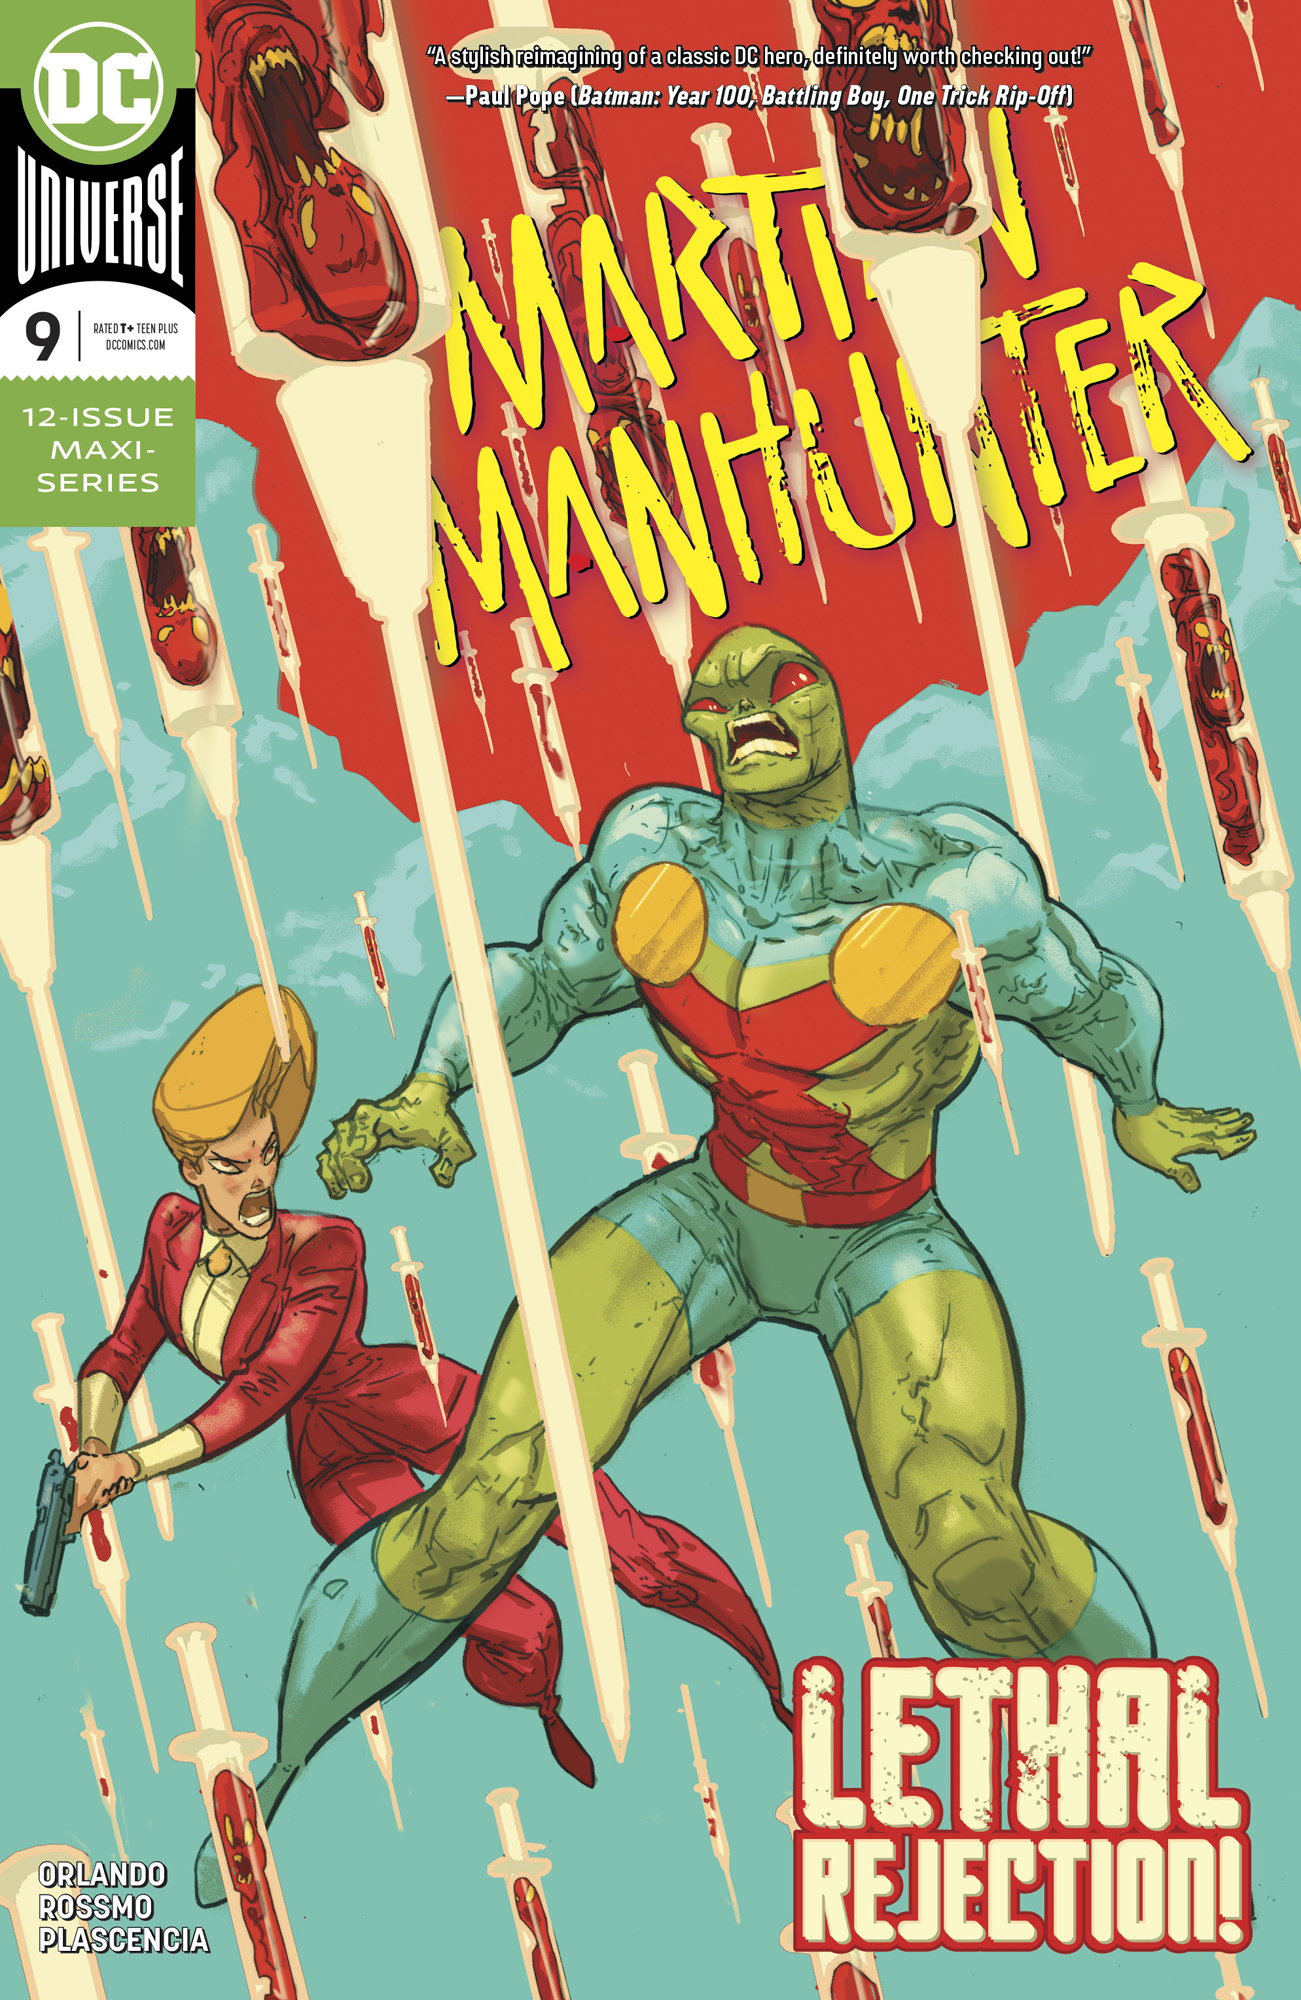 MARTIAN MANHUNTER #9 (OF 12)